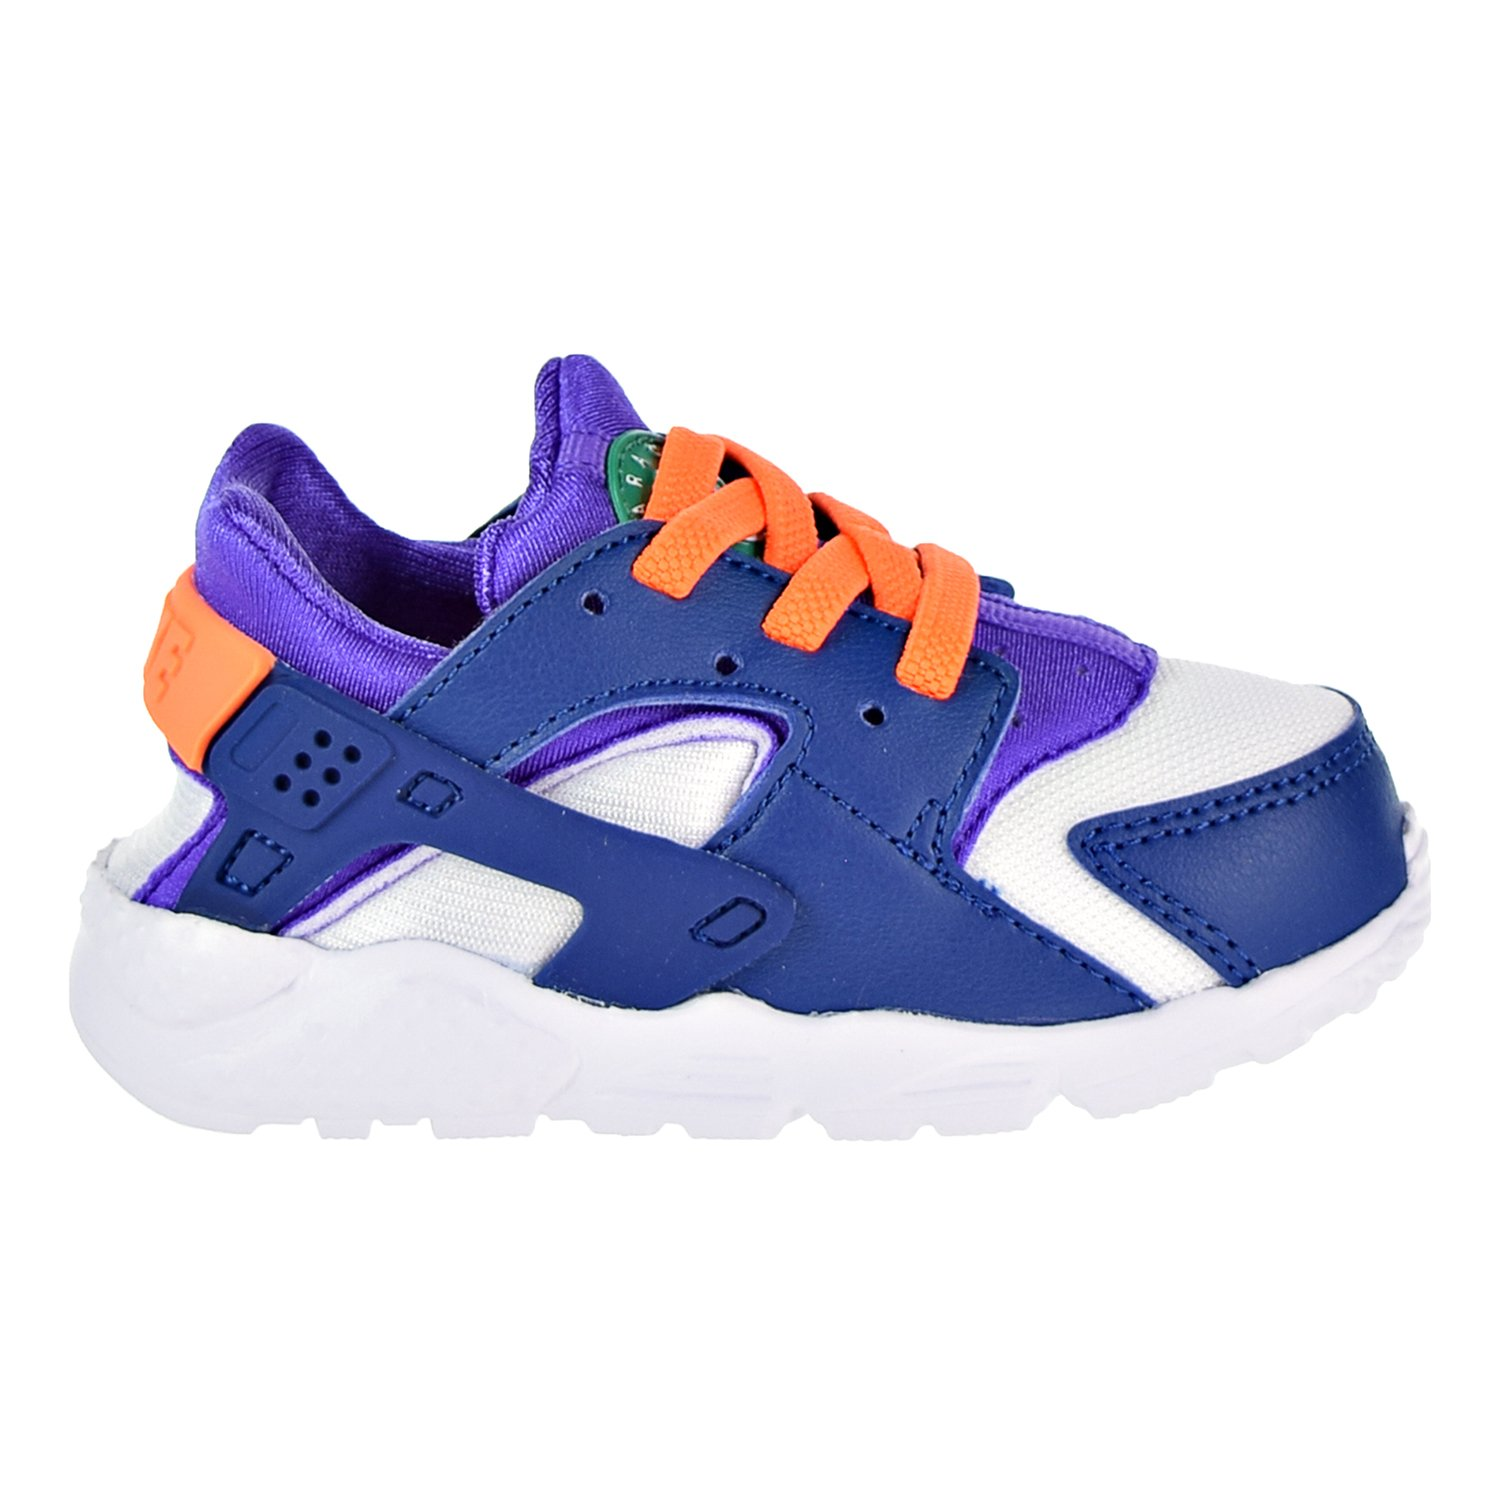 1d379651f213 Amazon.com  NIKE Huarache Run Todder s Shoes White Cone Gym Blue  704950-111  Shoes